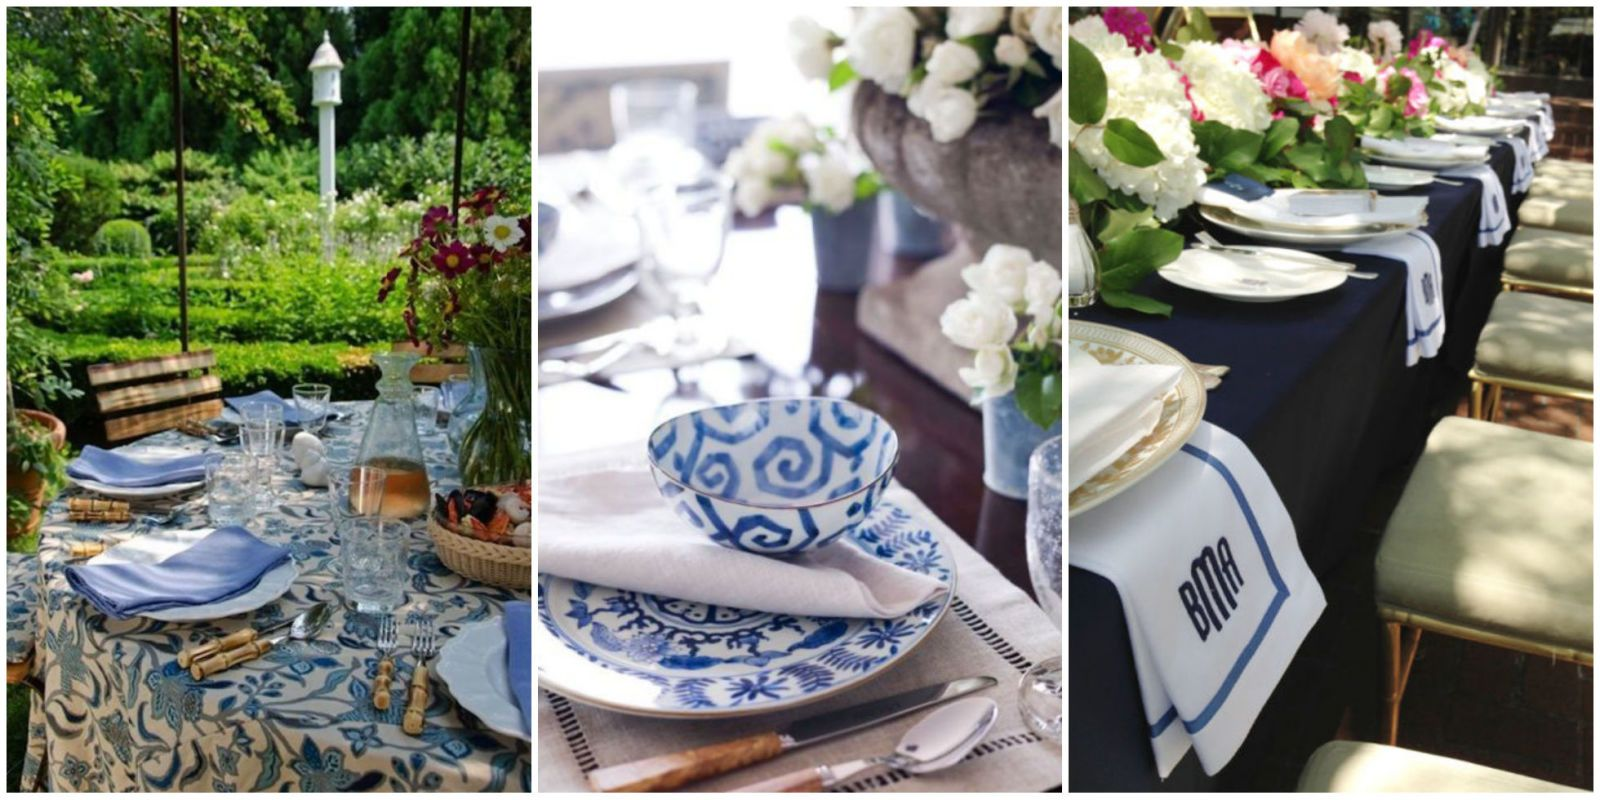 This canu0027t-go-wrong color combination feels especially fresh in warm weather. & Blue and White Dishes and Table Settings - Tablescapes and ...